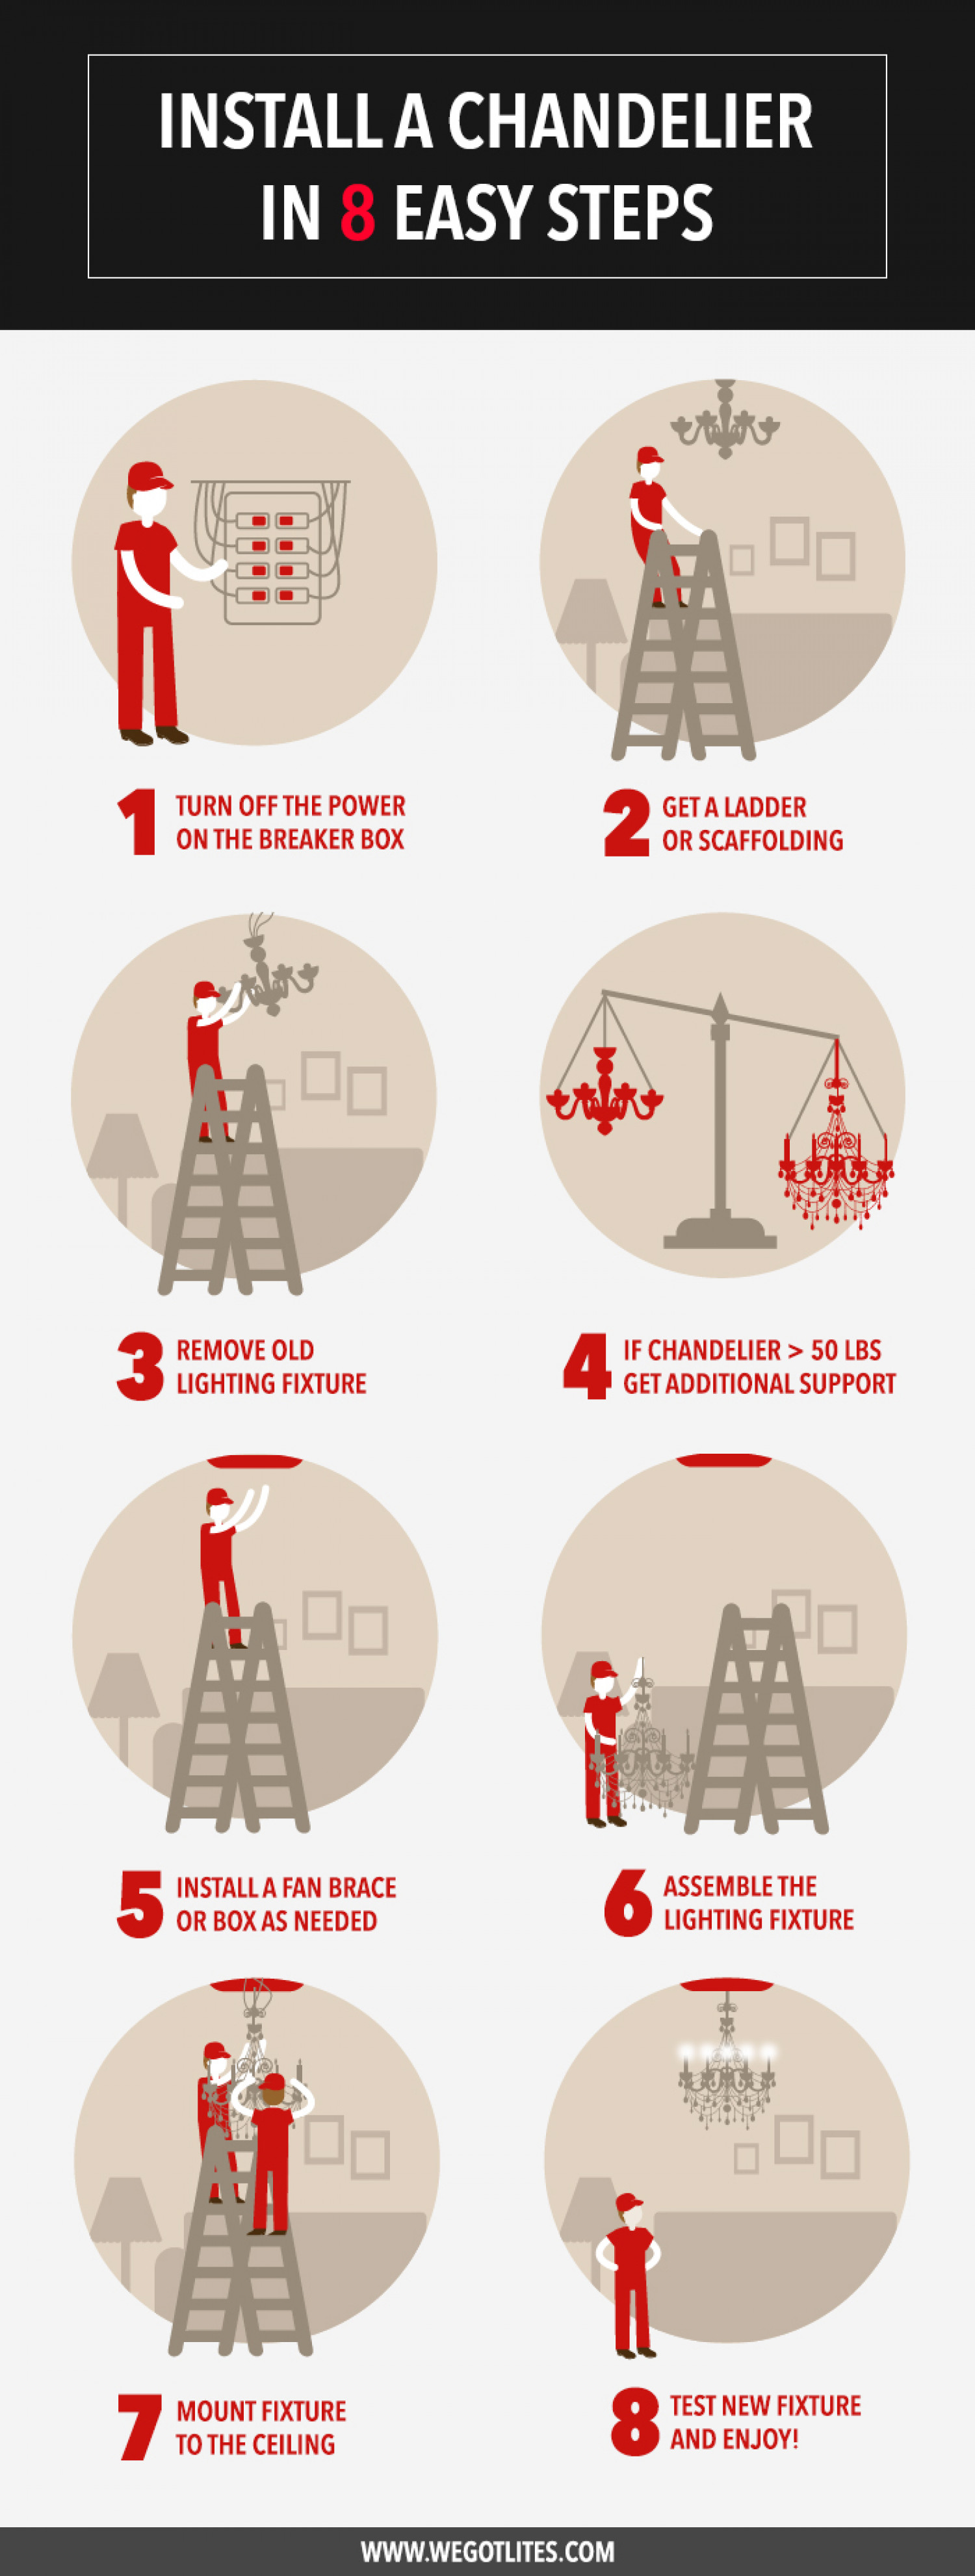 8 easy steps to install a chandelier visual 8 easy steps to install a chandelier infographic arubaitofo Choice Image